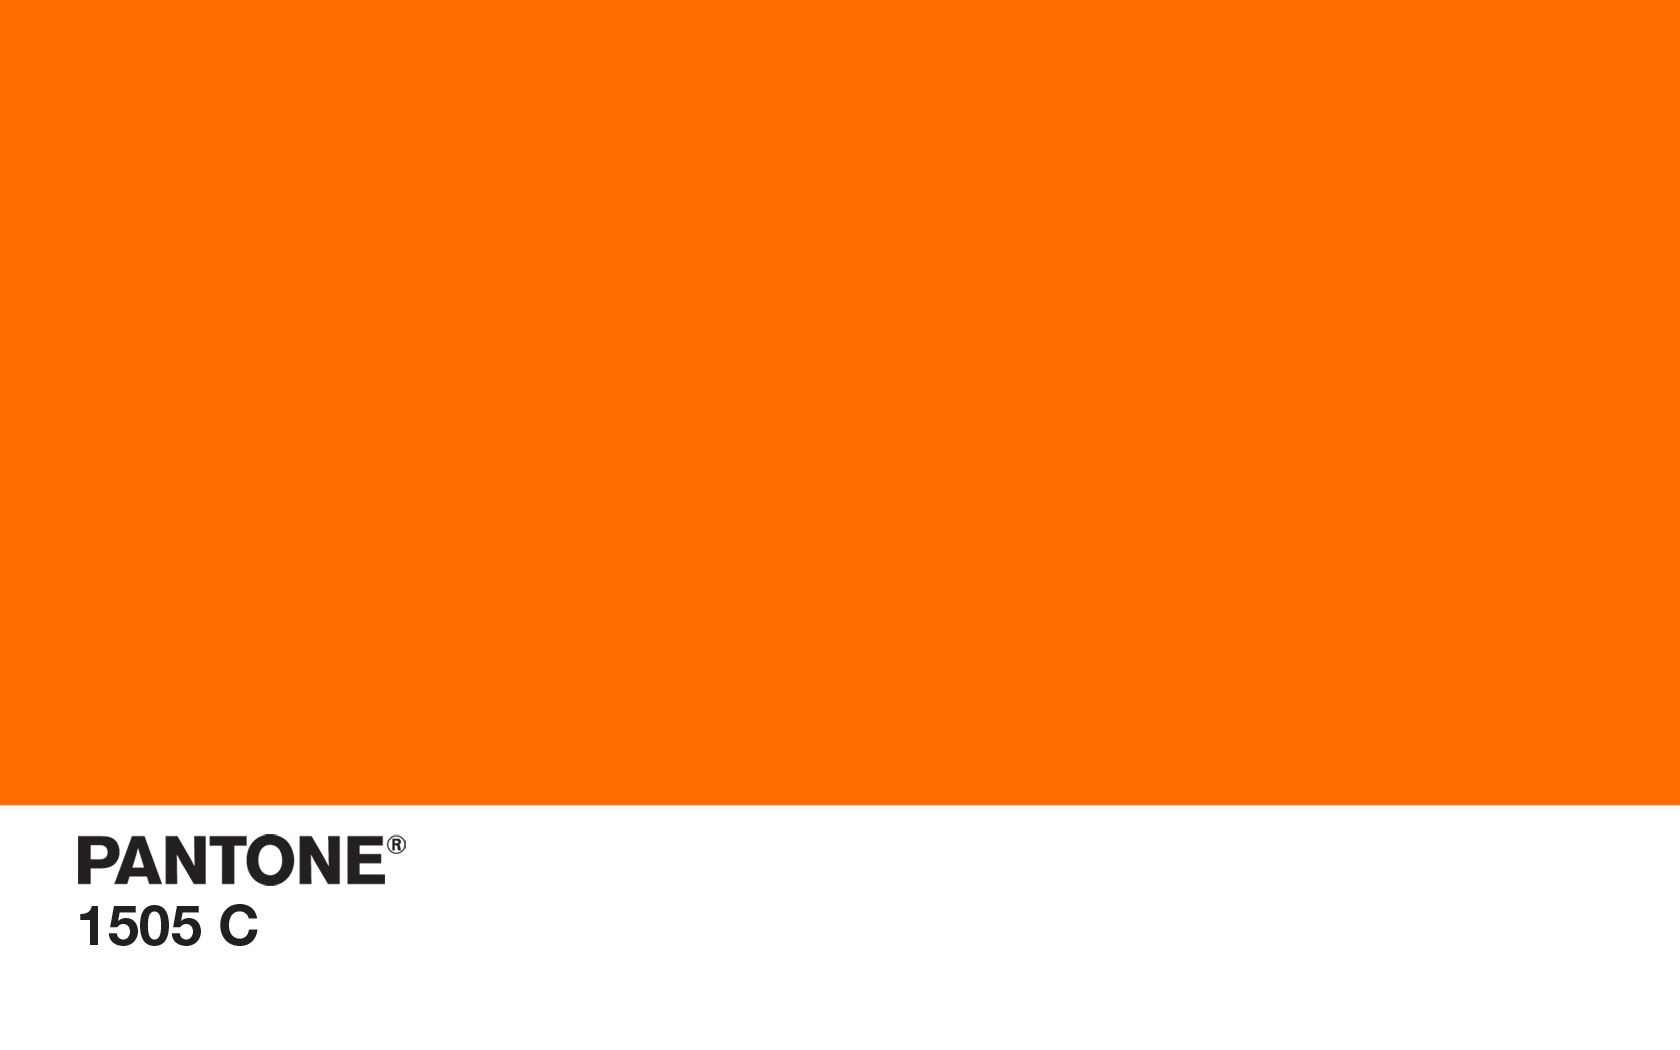 Pantone Pms 1505c Orange Color Wallpaper Colorful Simple